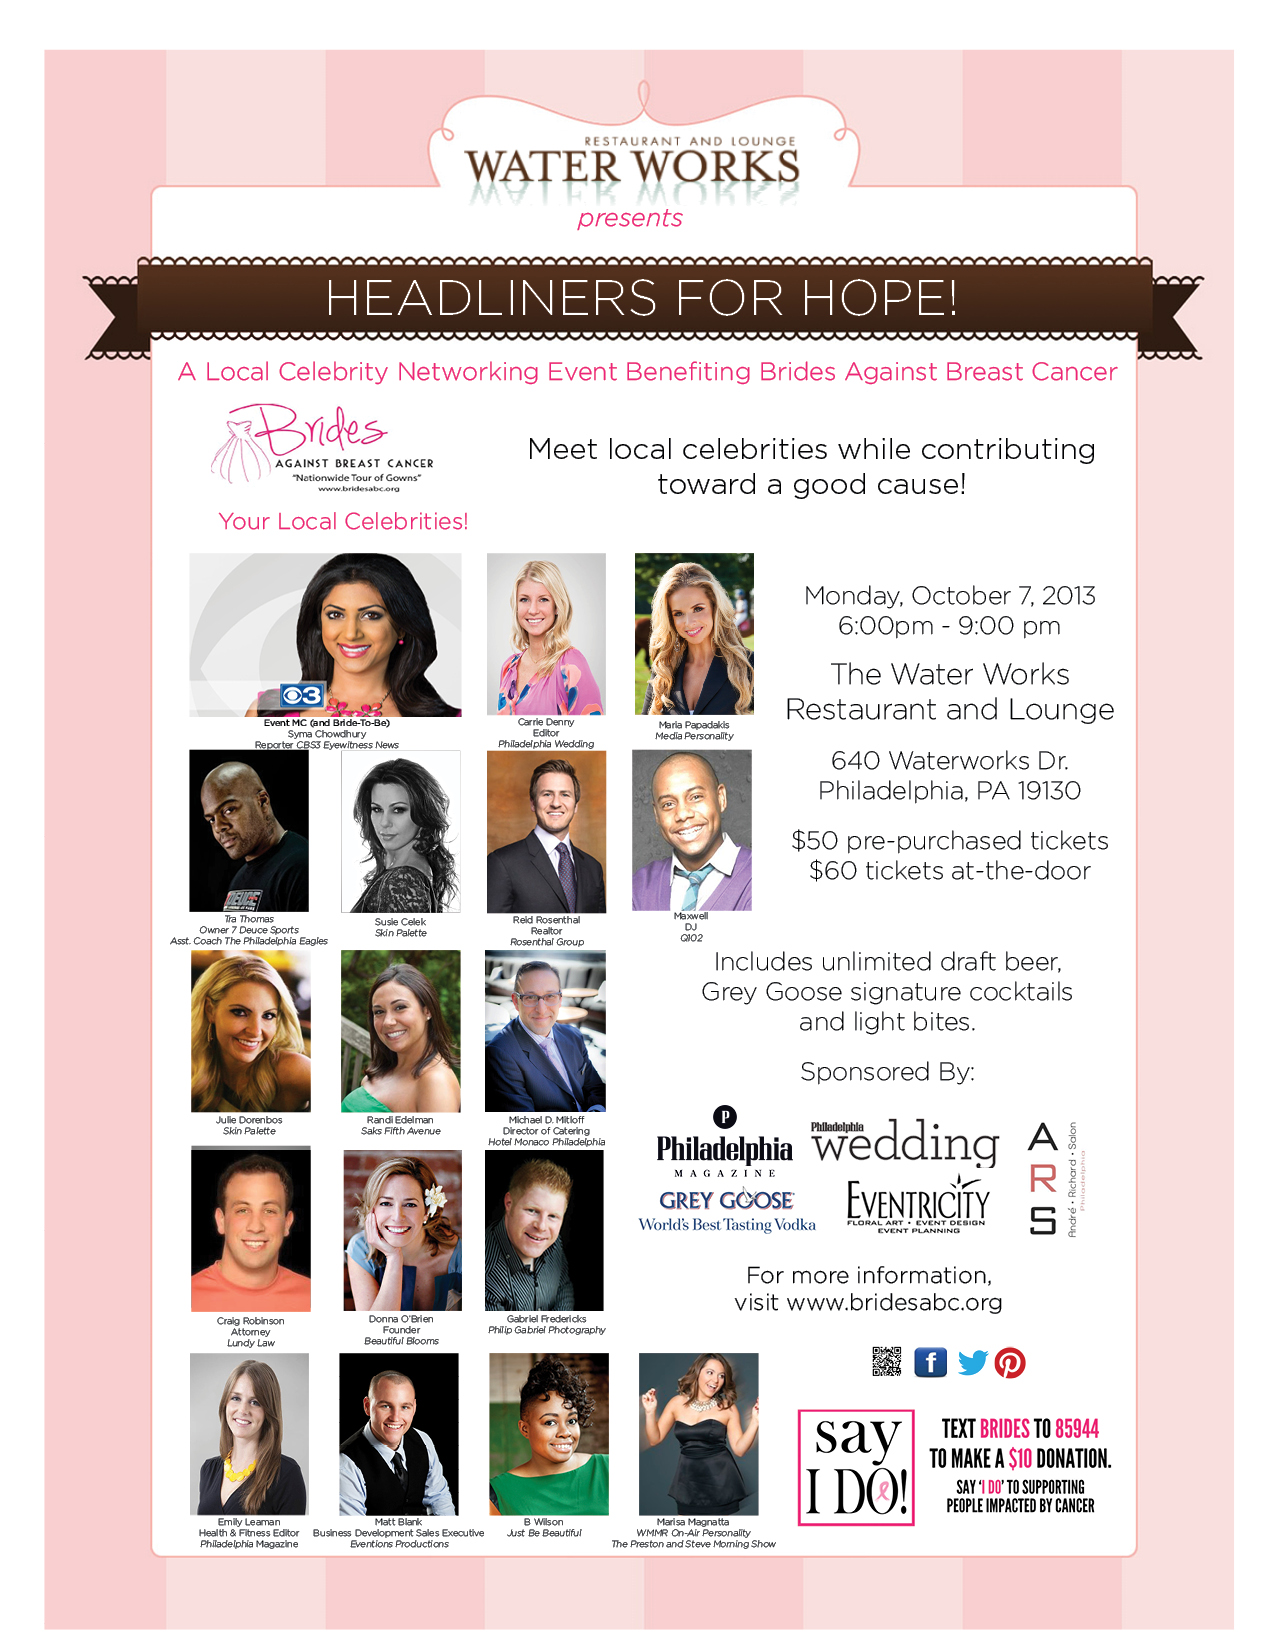 Come Out With Philadelphia Wedding and Brides Against Breast Cancer!